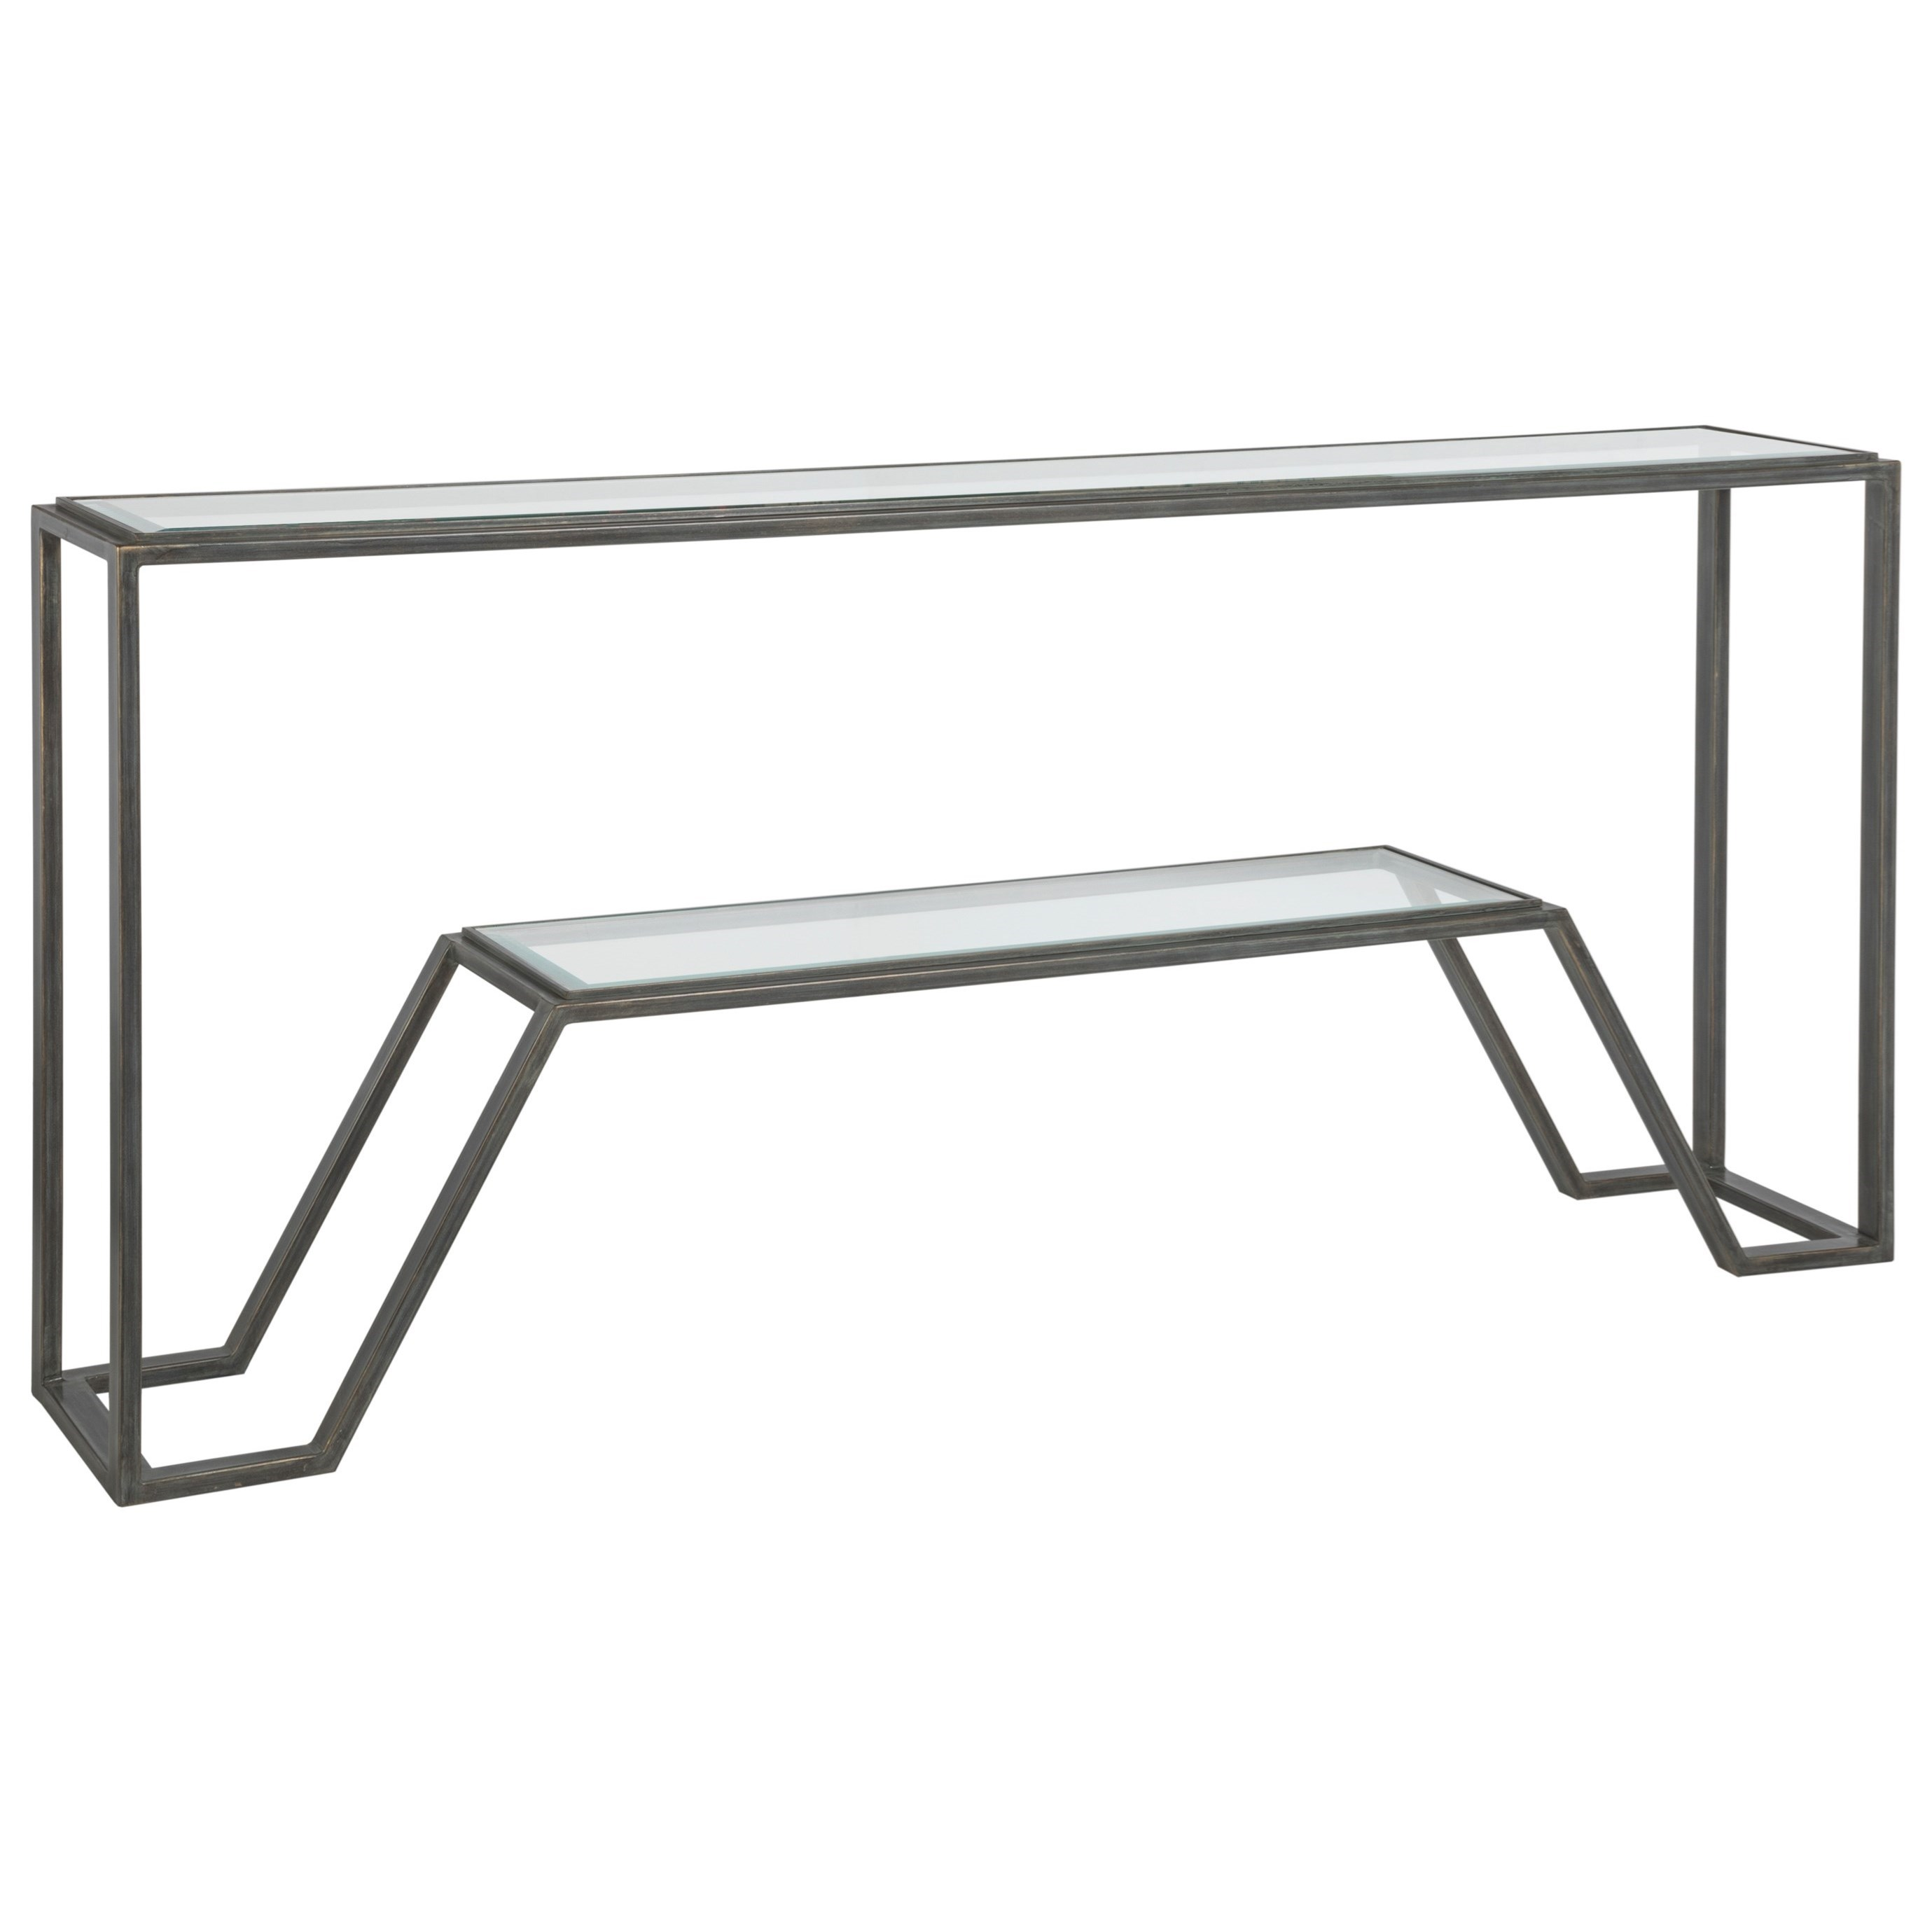 Metal Designs Byron Console by Artistica at Baer's Furniture